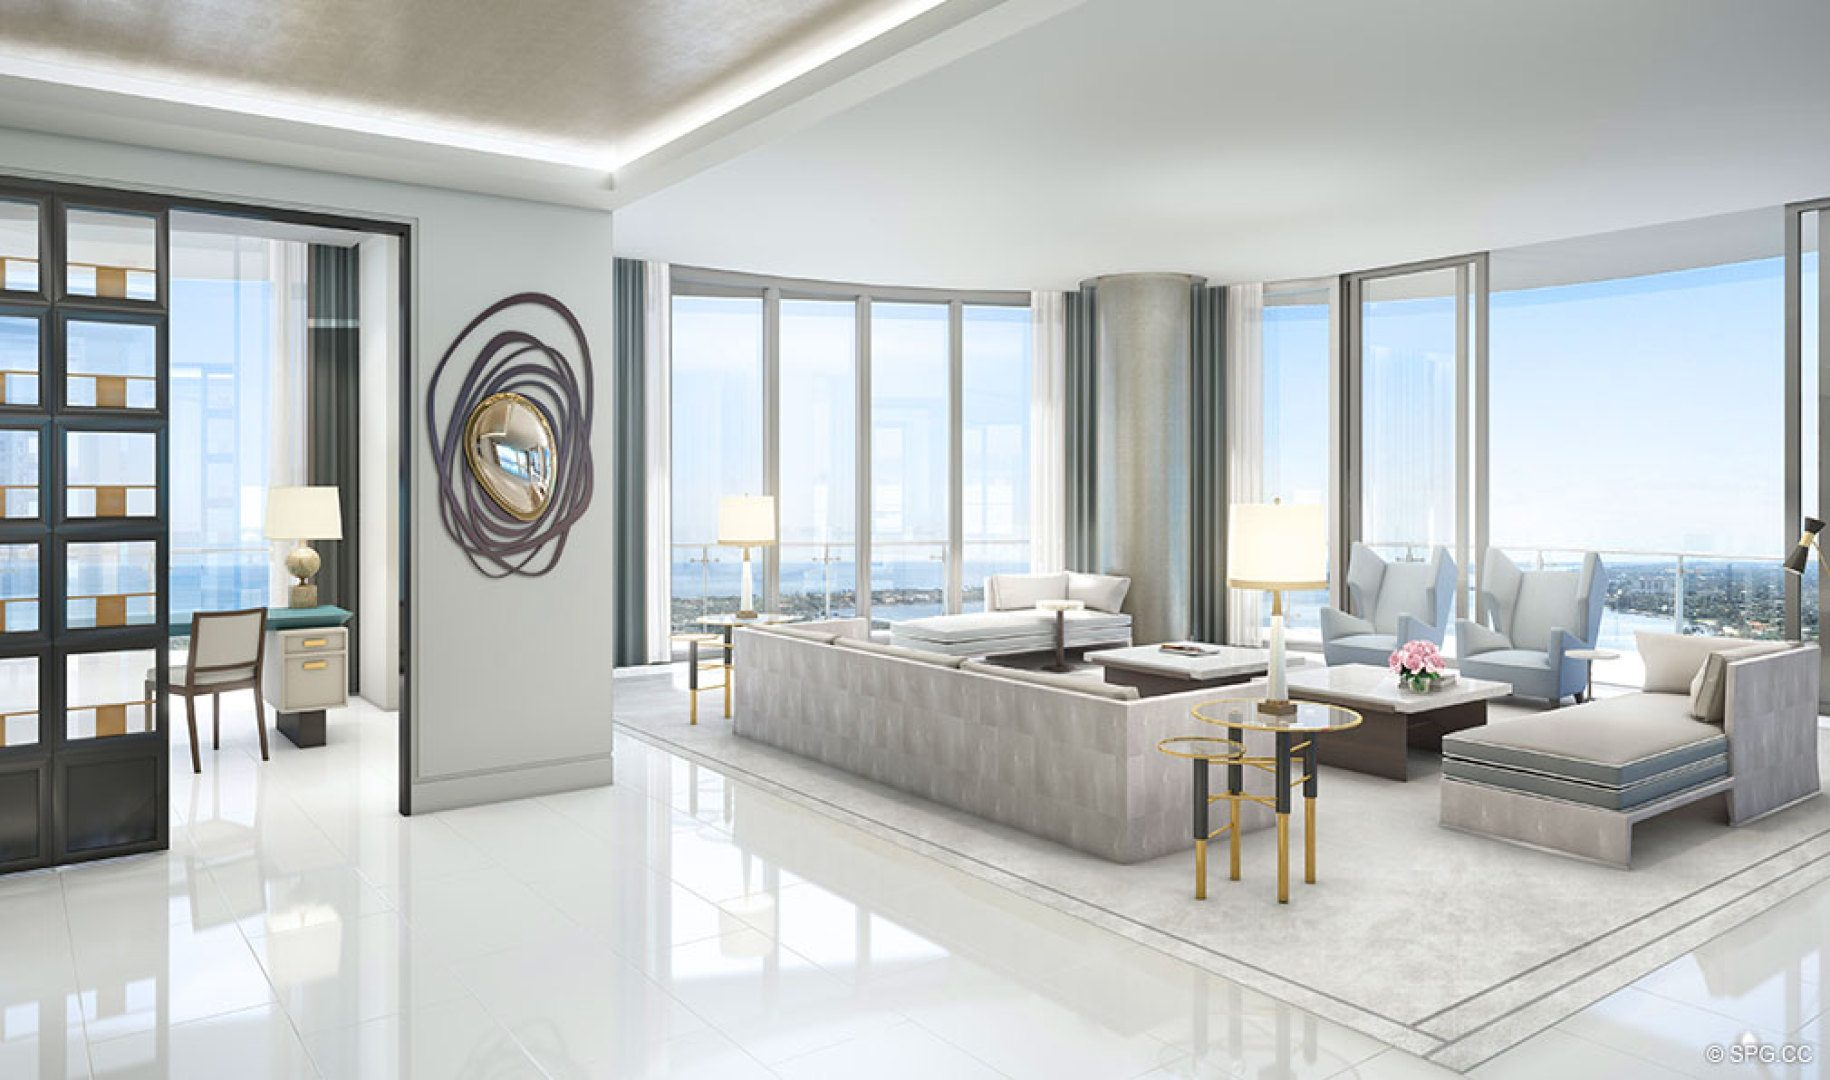 The bristol palm beach luxury waterfront condos in west for Interior design west palm beach